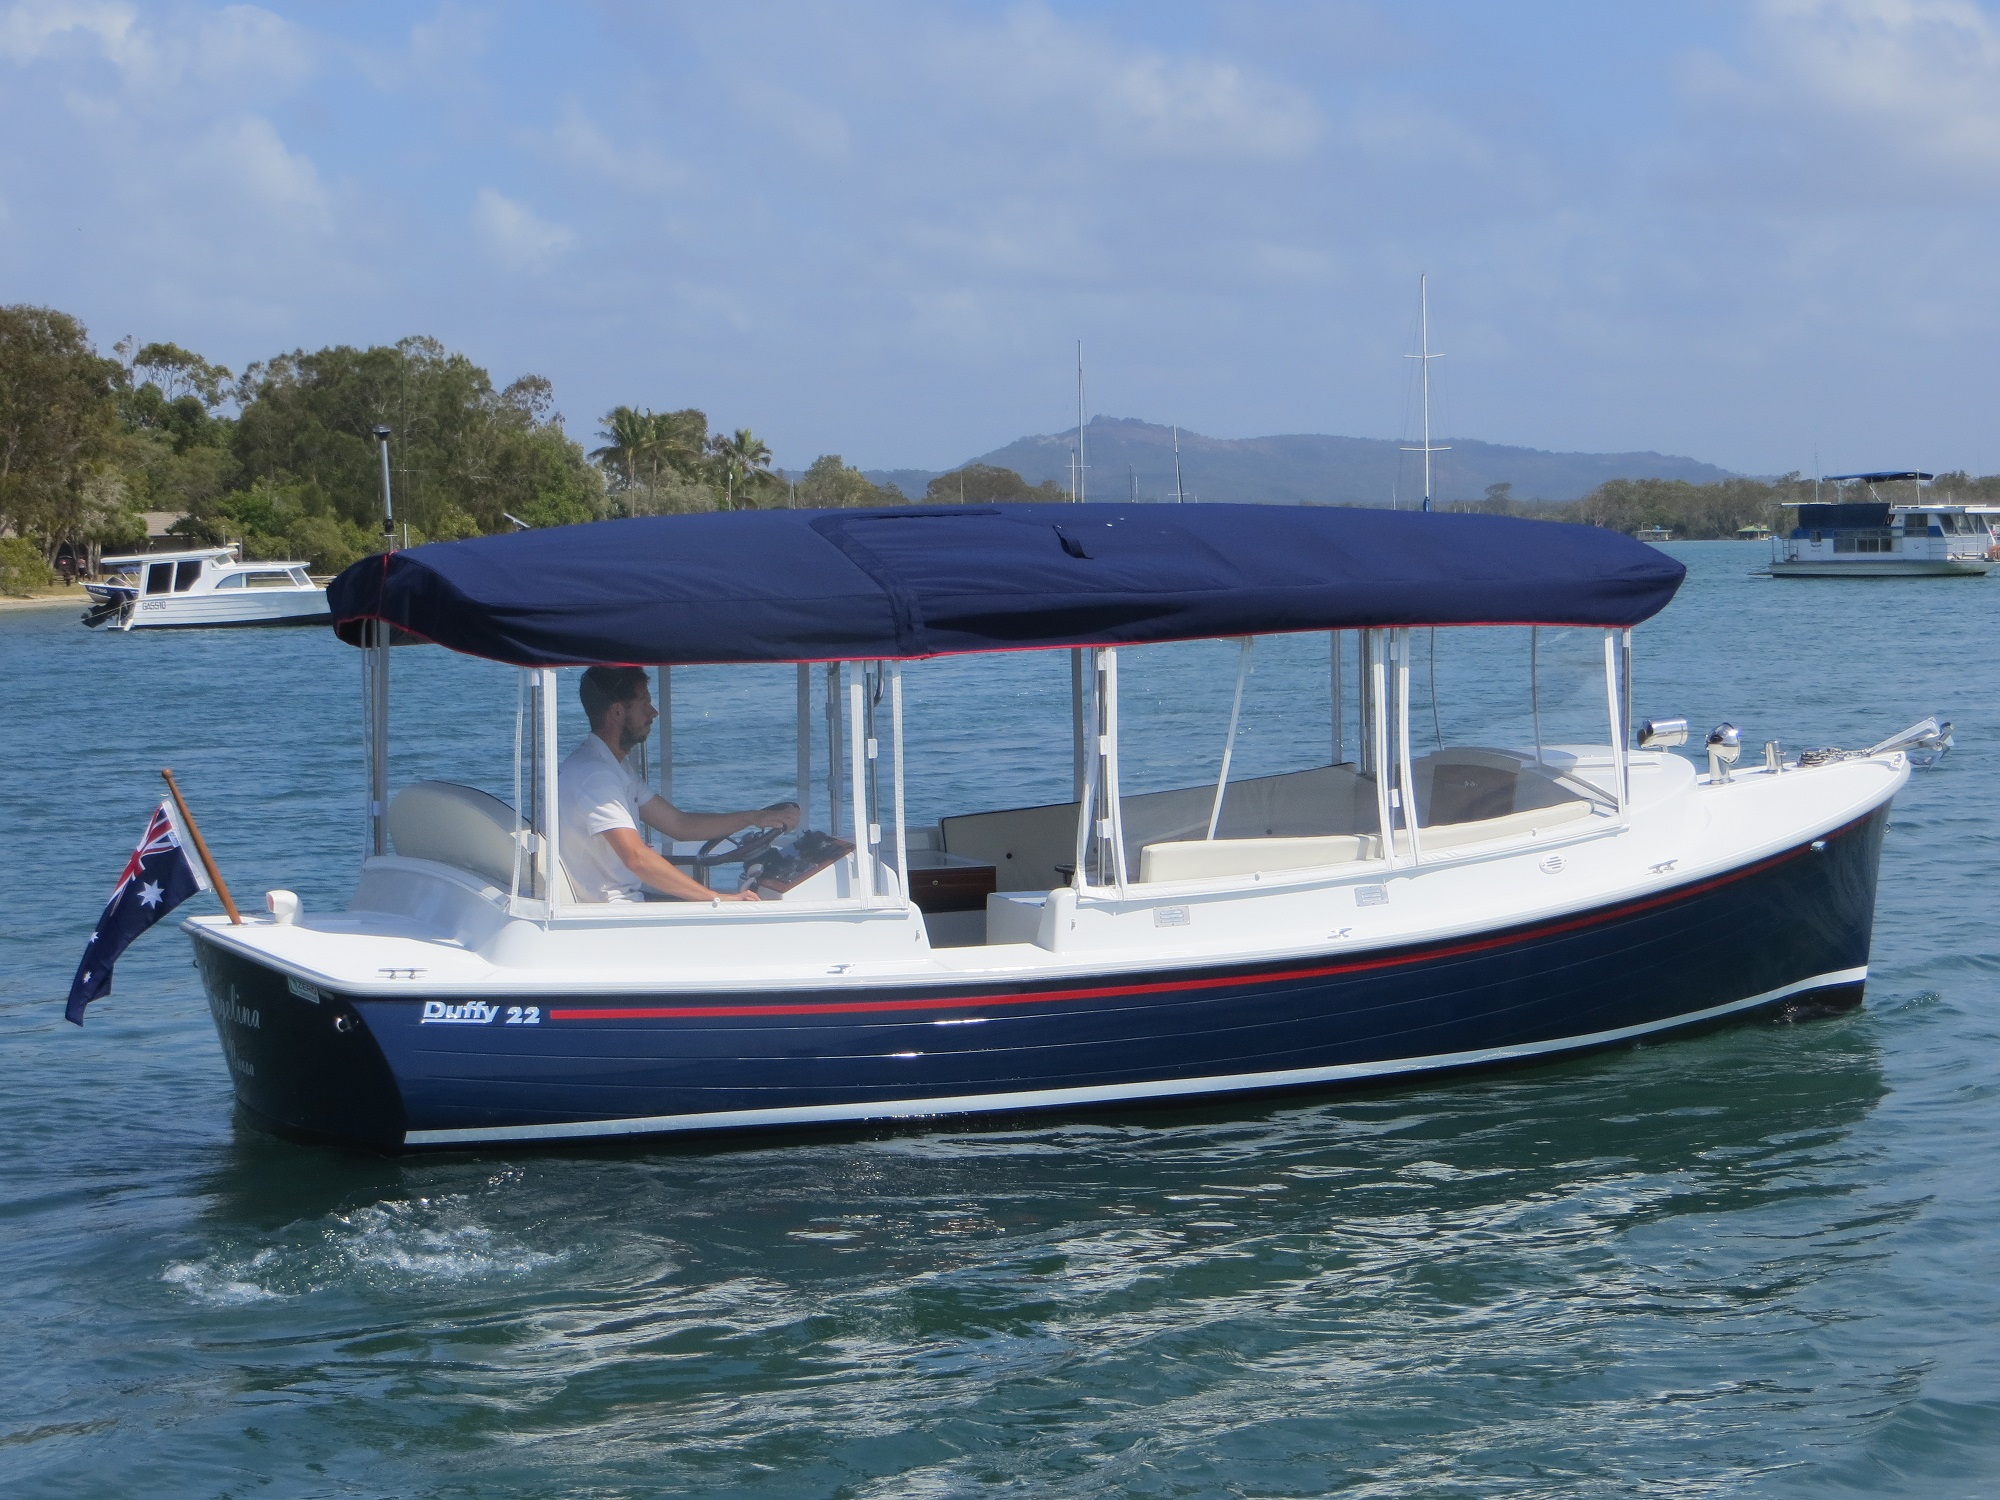 Another Electric Boat Launches In Noosa Eco Boats Australia